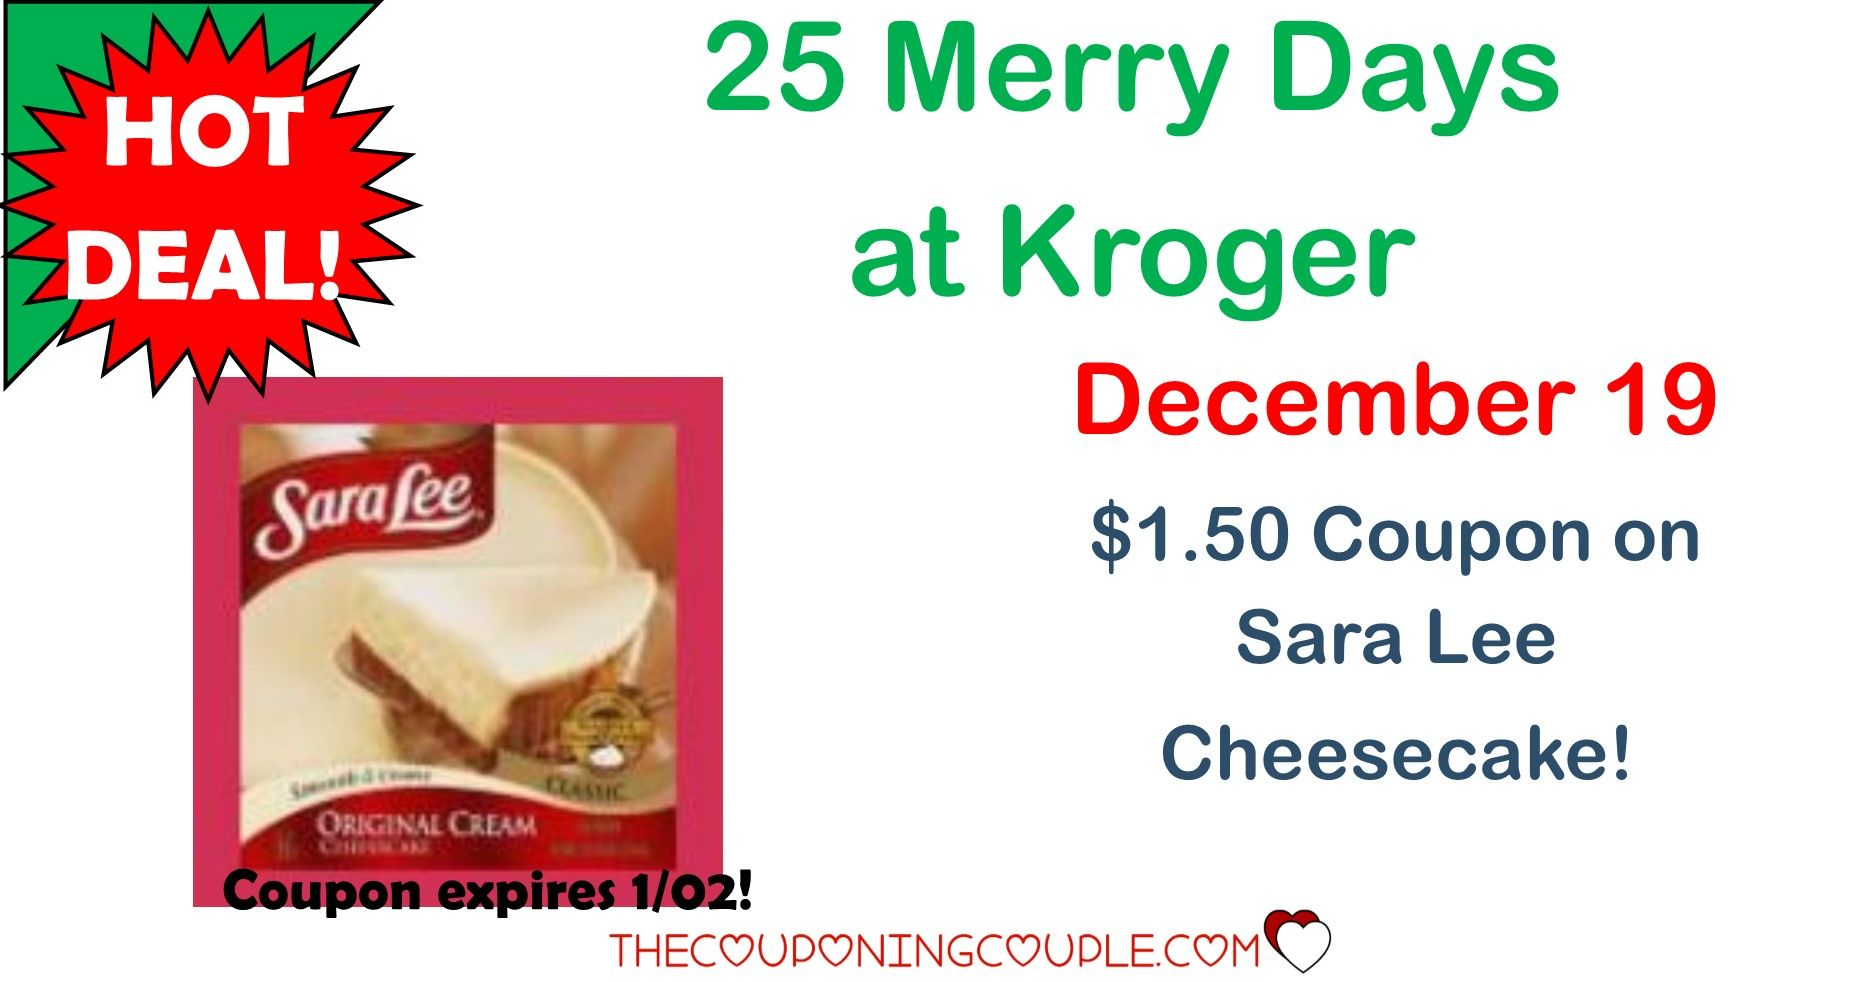 WOOHOO! The 25 Days of Kroger are here! Download a coupon to get $1.50 off Sara Lee Cheesecake! Click the link below to get all of the details ► http://www.thecouponingcouple.com/25-merry-days-of-kroger-1128/ #Coupons #Couponing #CouponCommunity  Visit us at http://www.thecouponingcouple.com for more great posts!